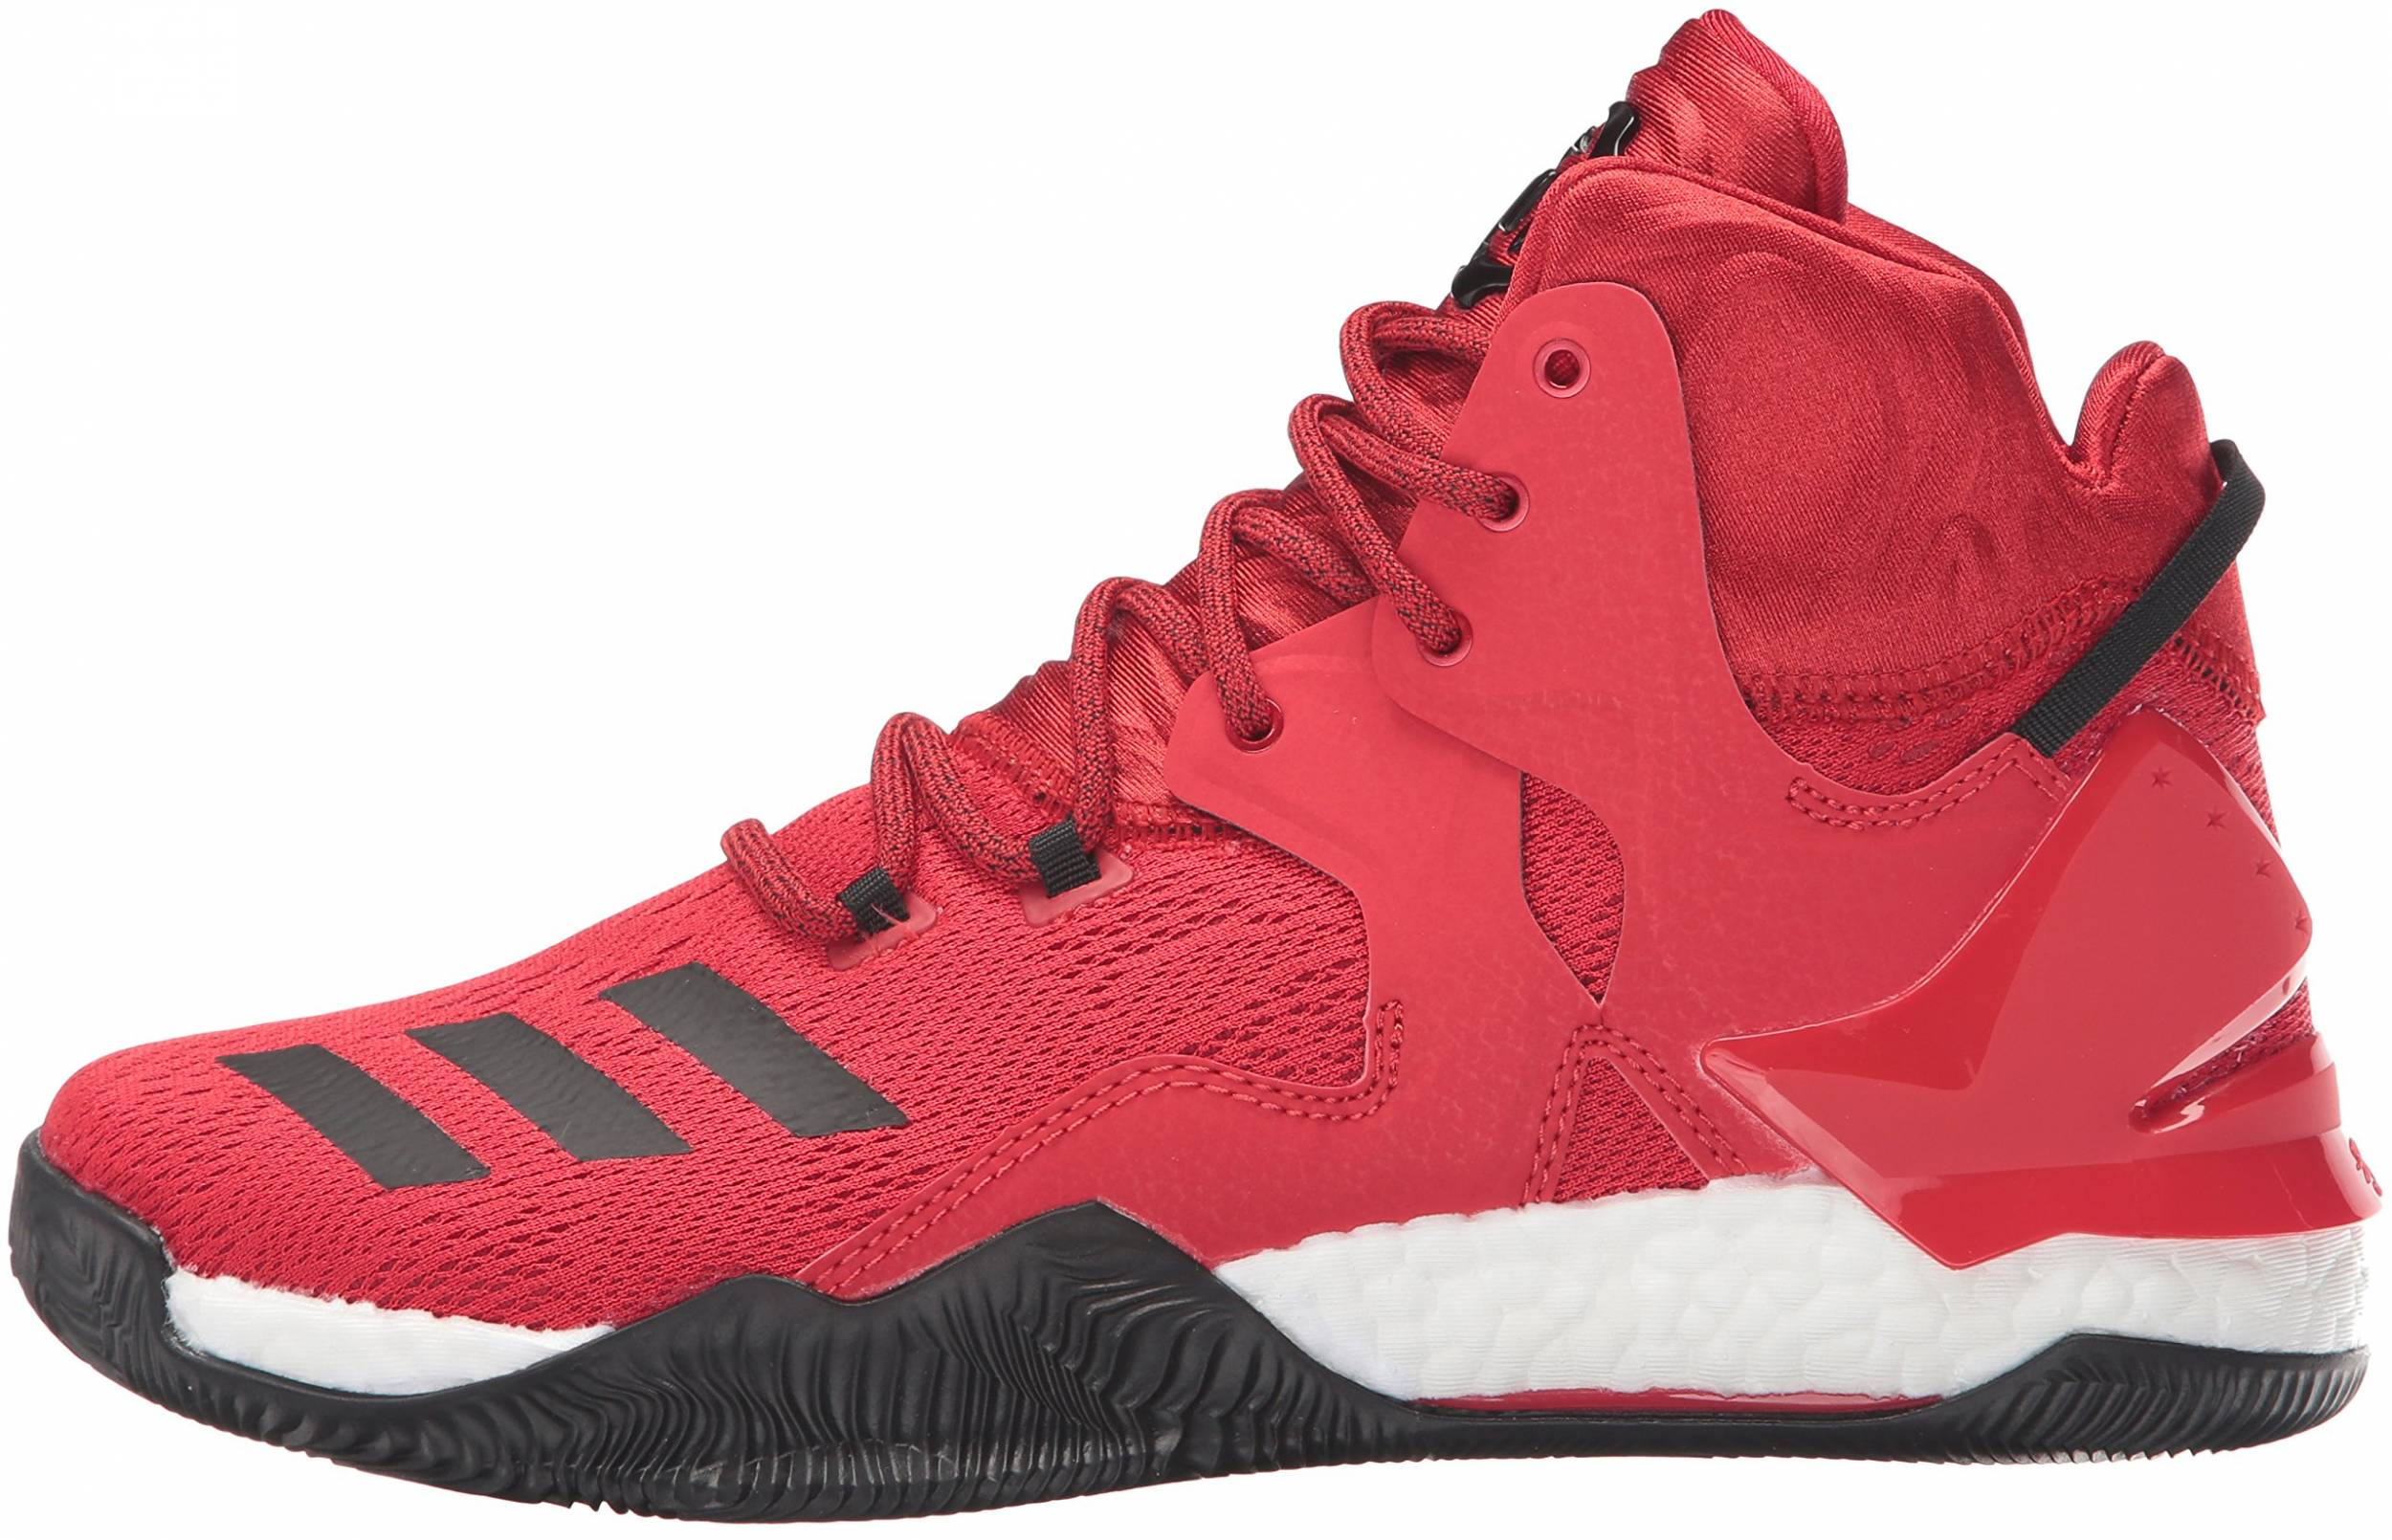 12 Reasons To Not To Buy Adidas D Rose 7 Feb 2021 Runrepeat